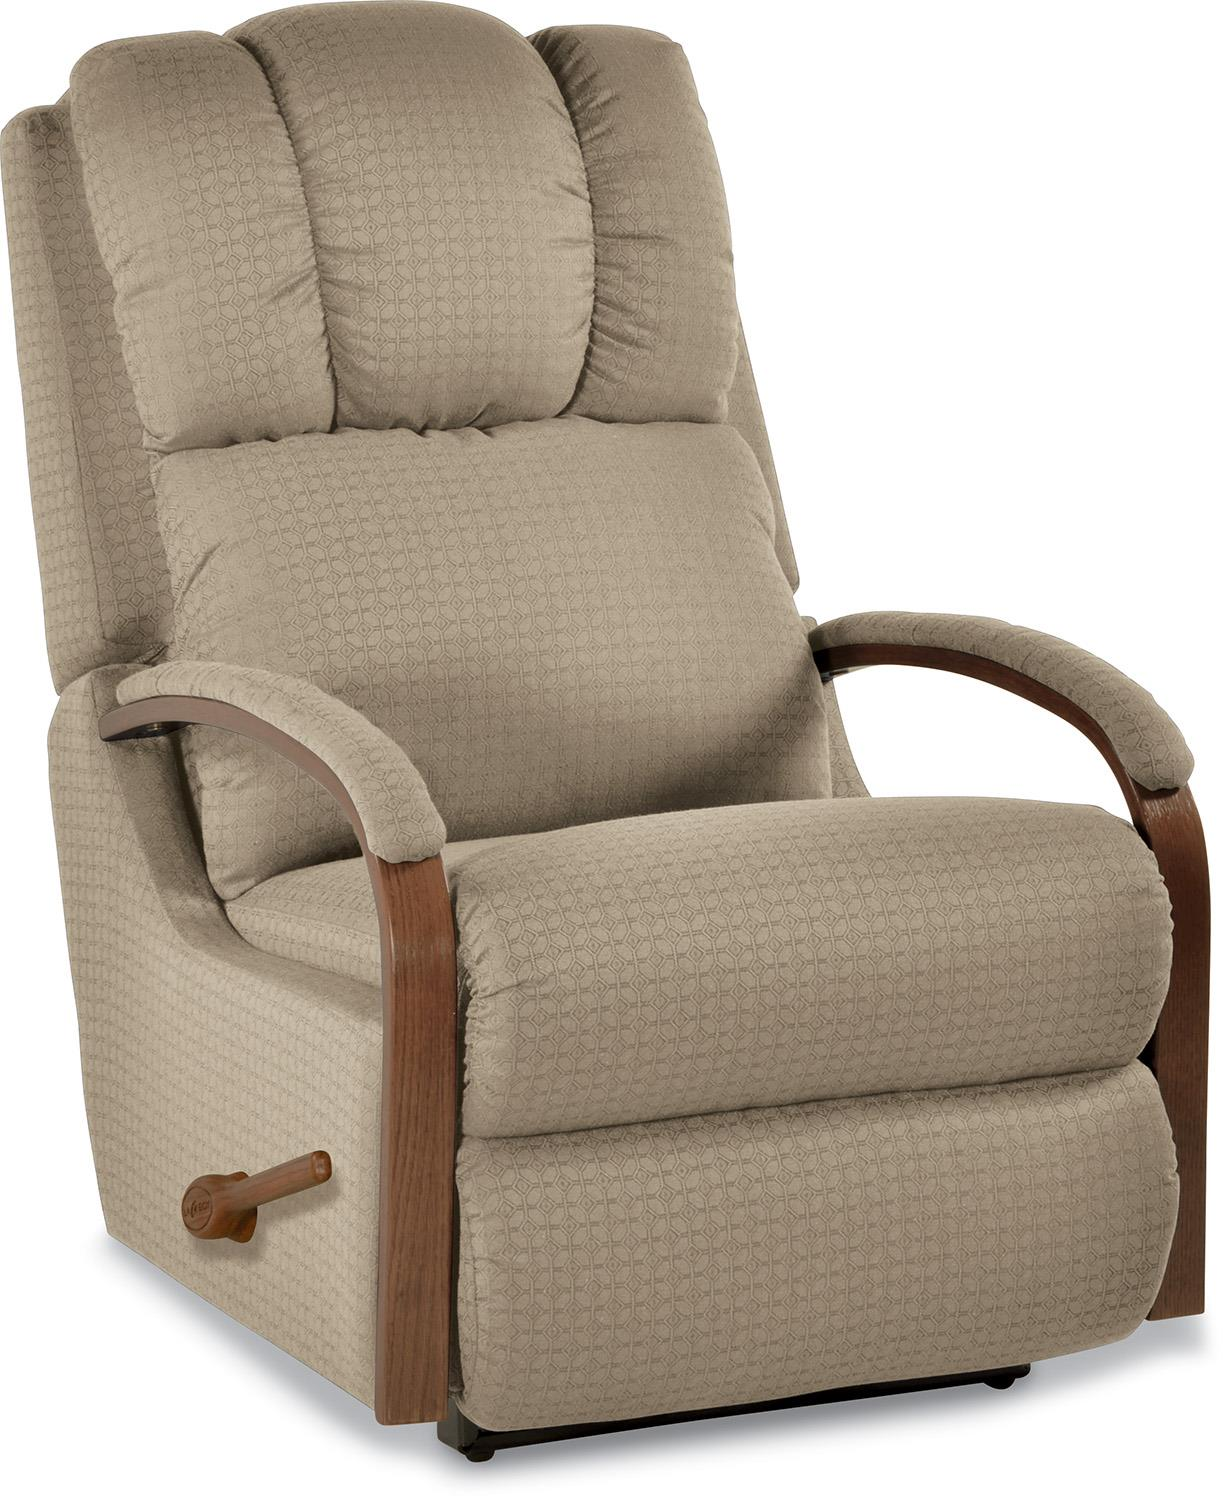 La Z Boy Recliners Harbor Town Reclina Way 174 Reclining